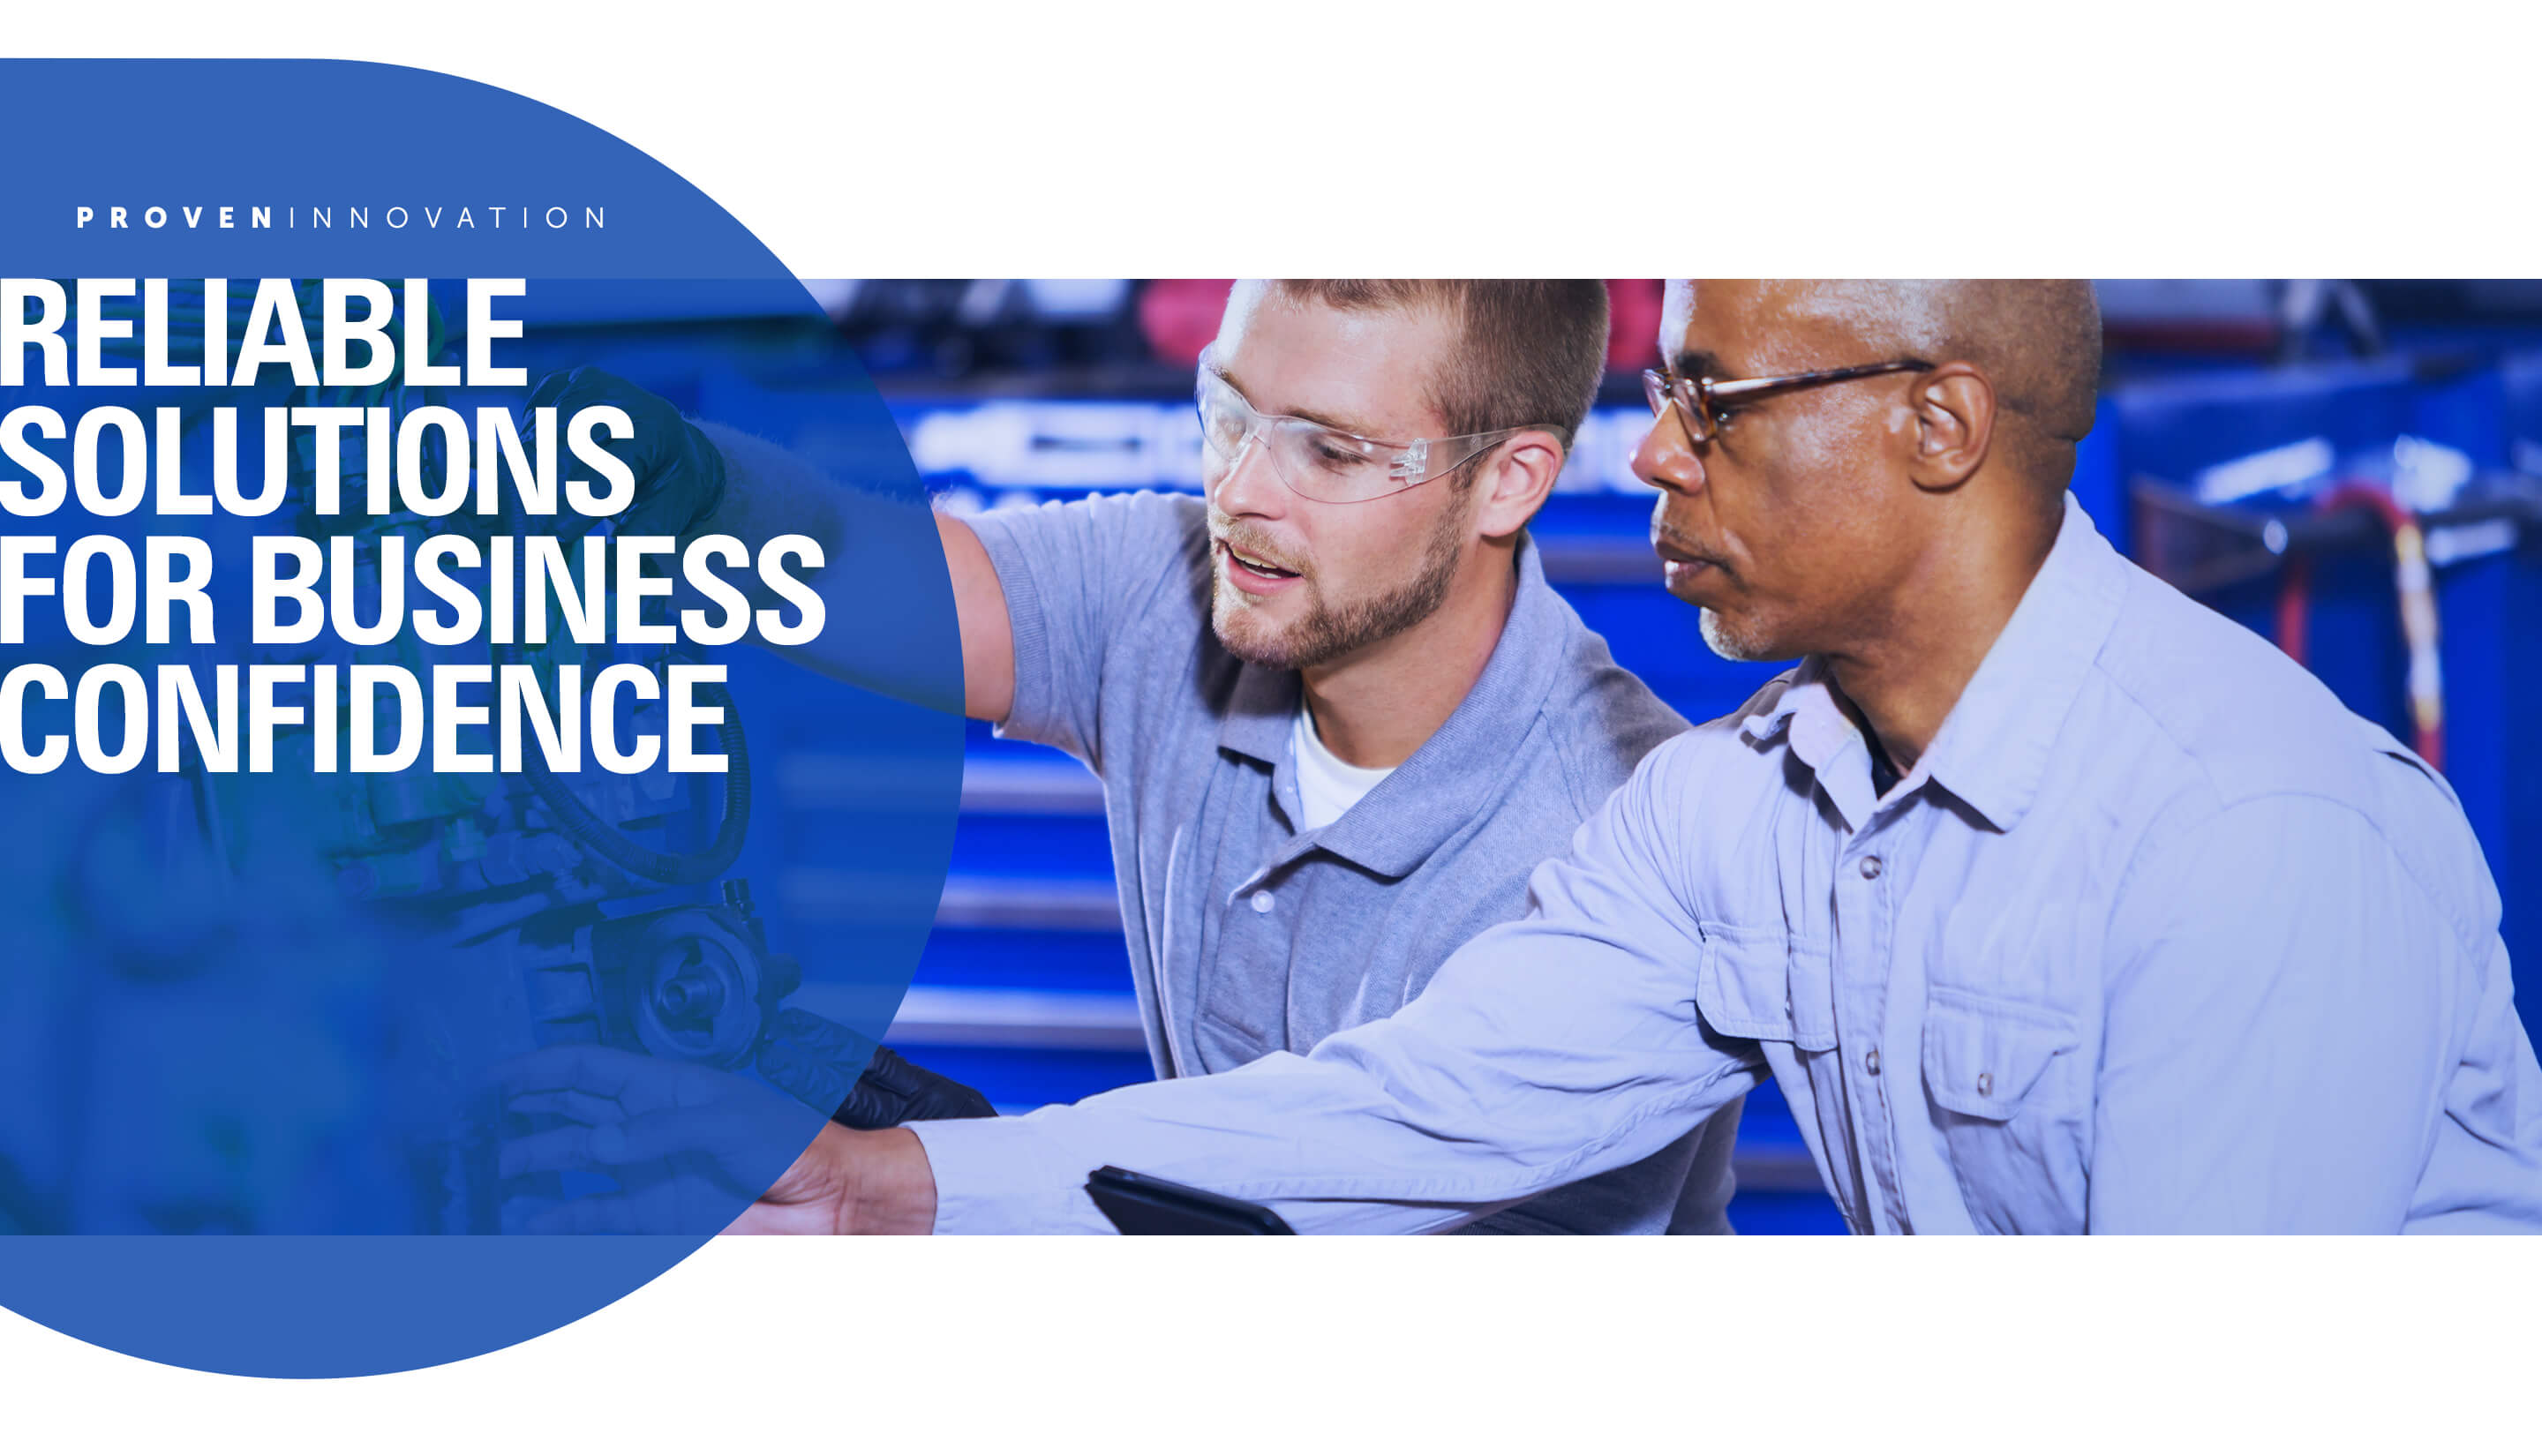 Reliable Solutions for Business Confidence